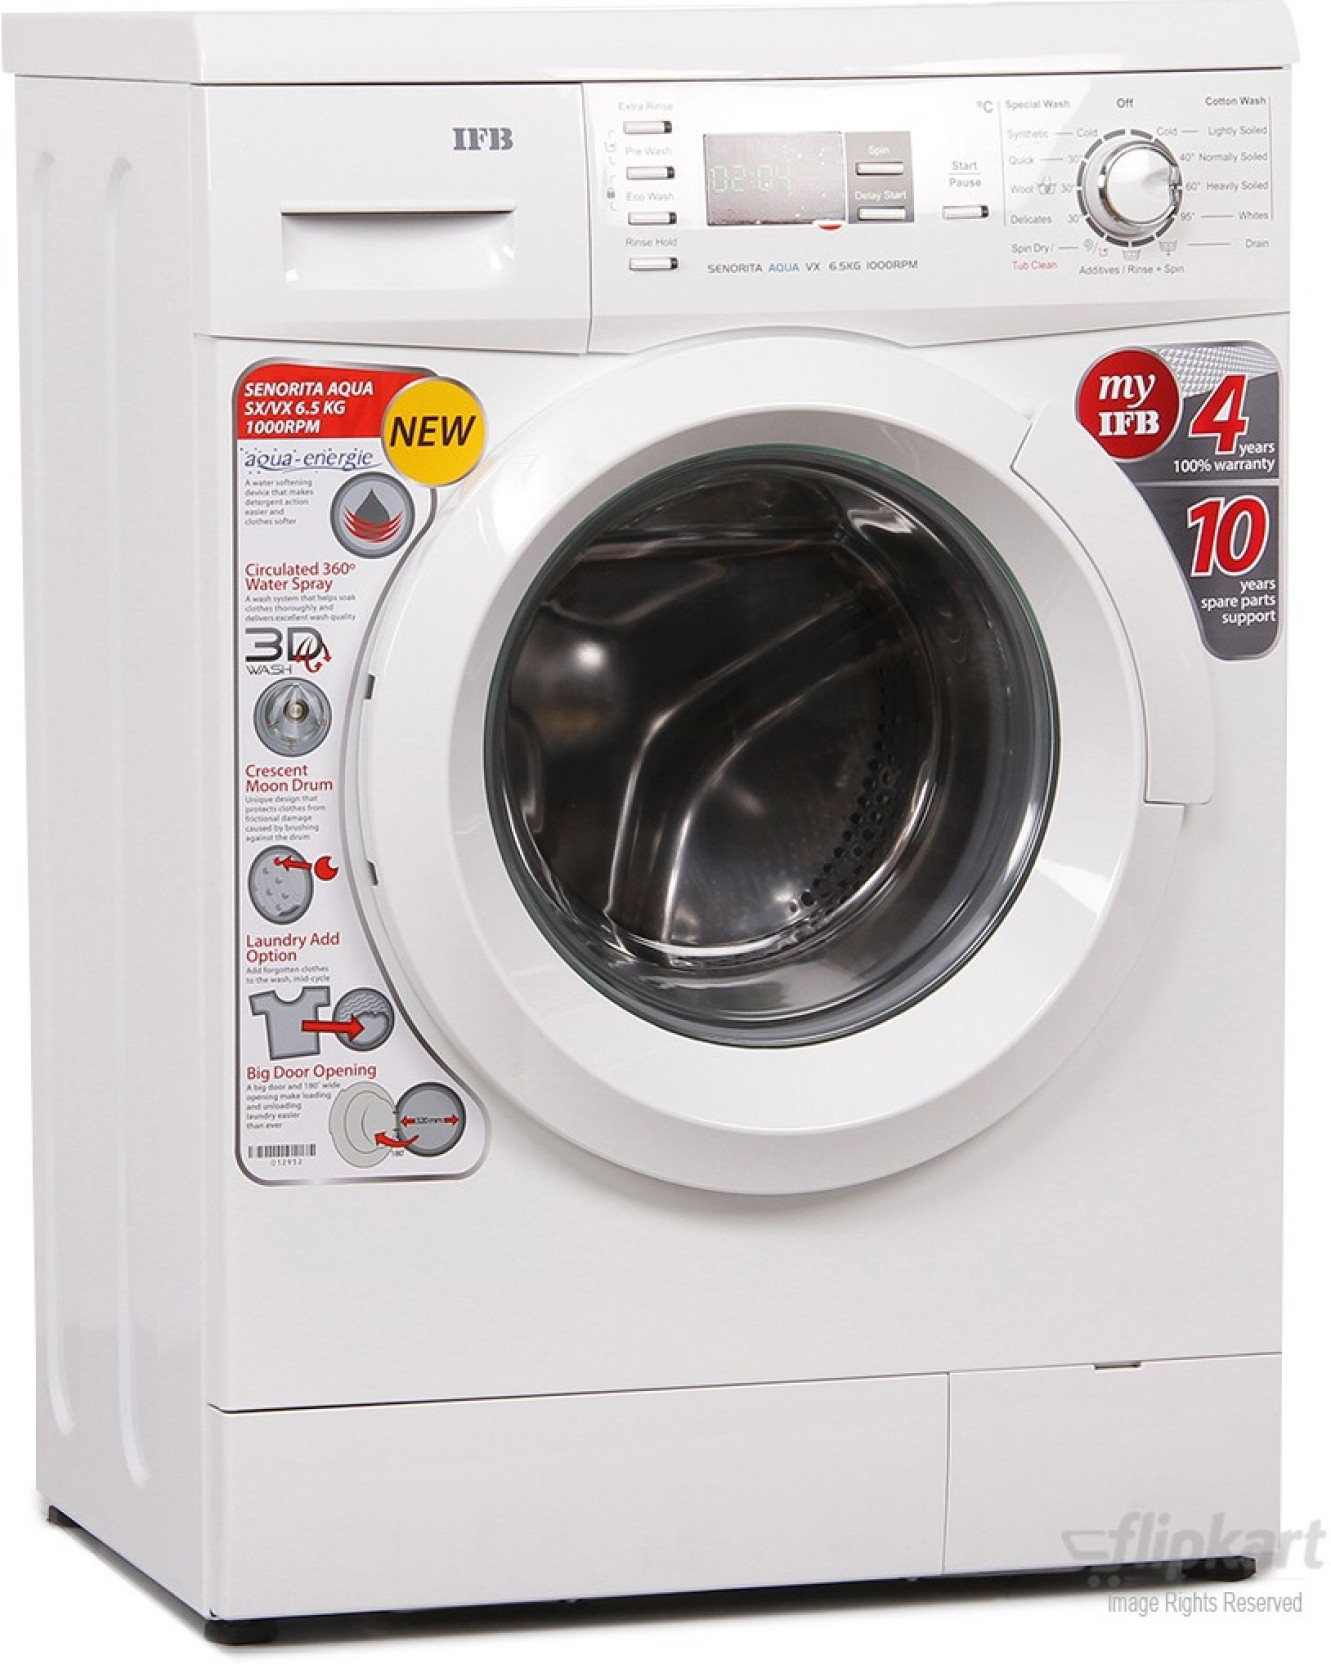 Ifb 6 5 Kg Fully Automatic Front Load Washing Machine Price In India